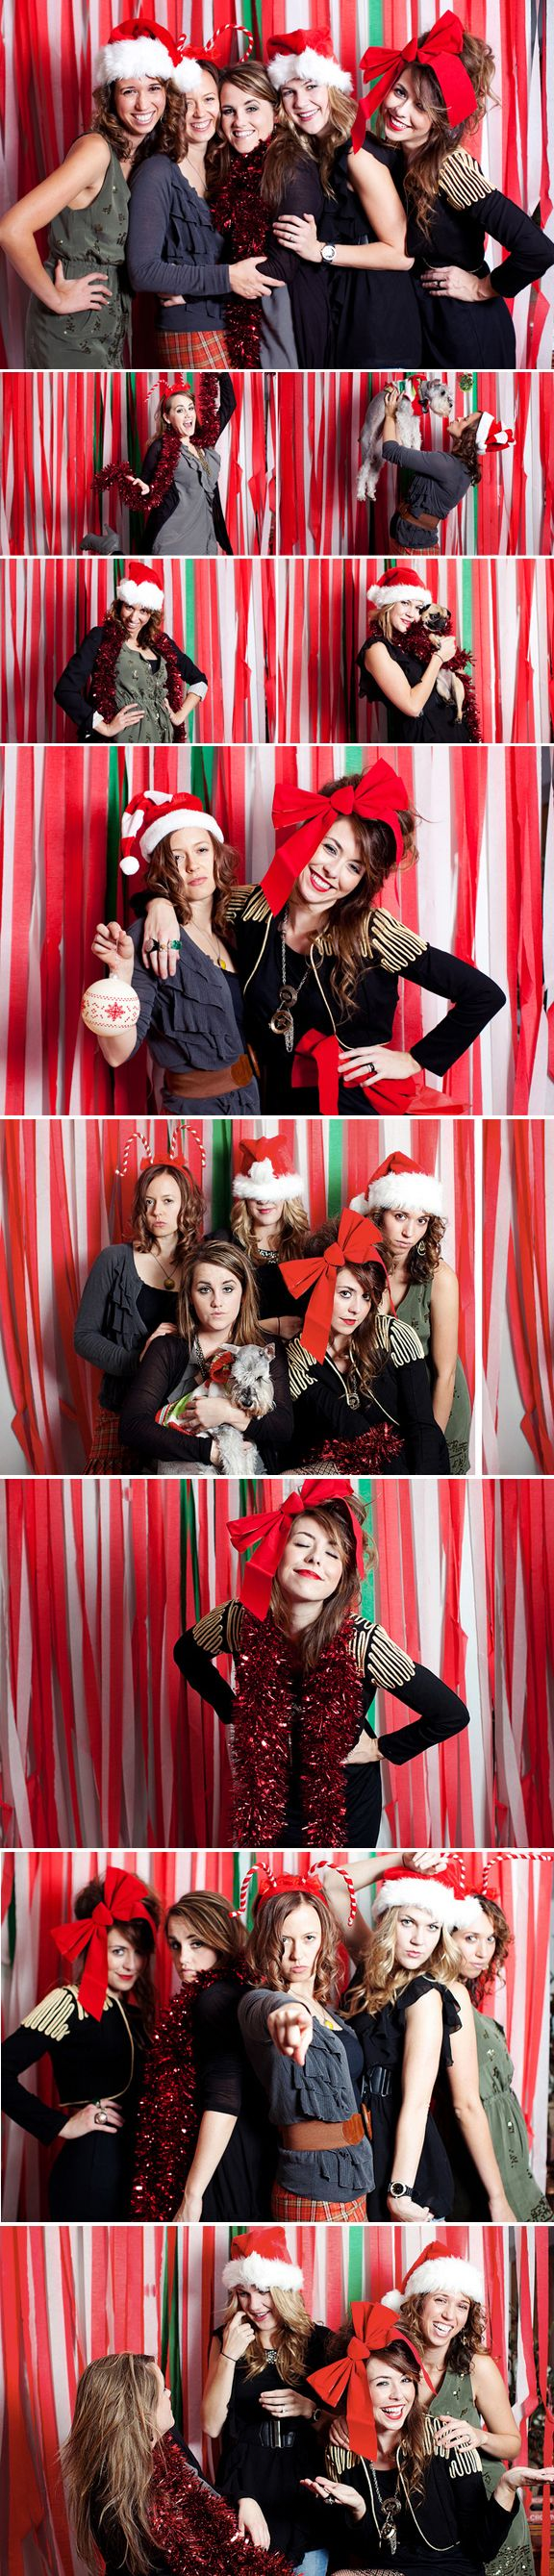 Christmas Picture Backdrop Ideas Easy Diy Christmas Photo Booth For The Next Ugly Christmas